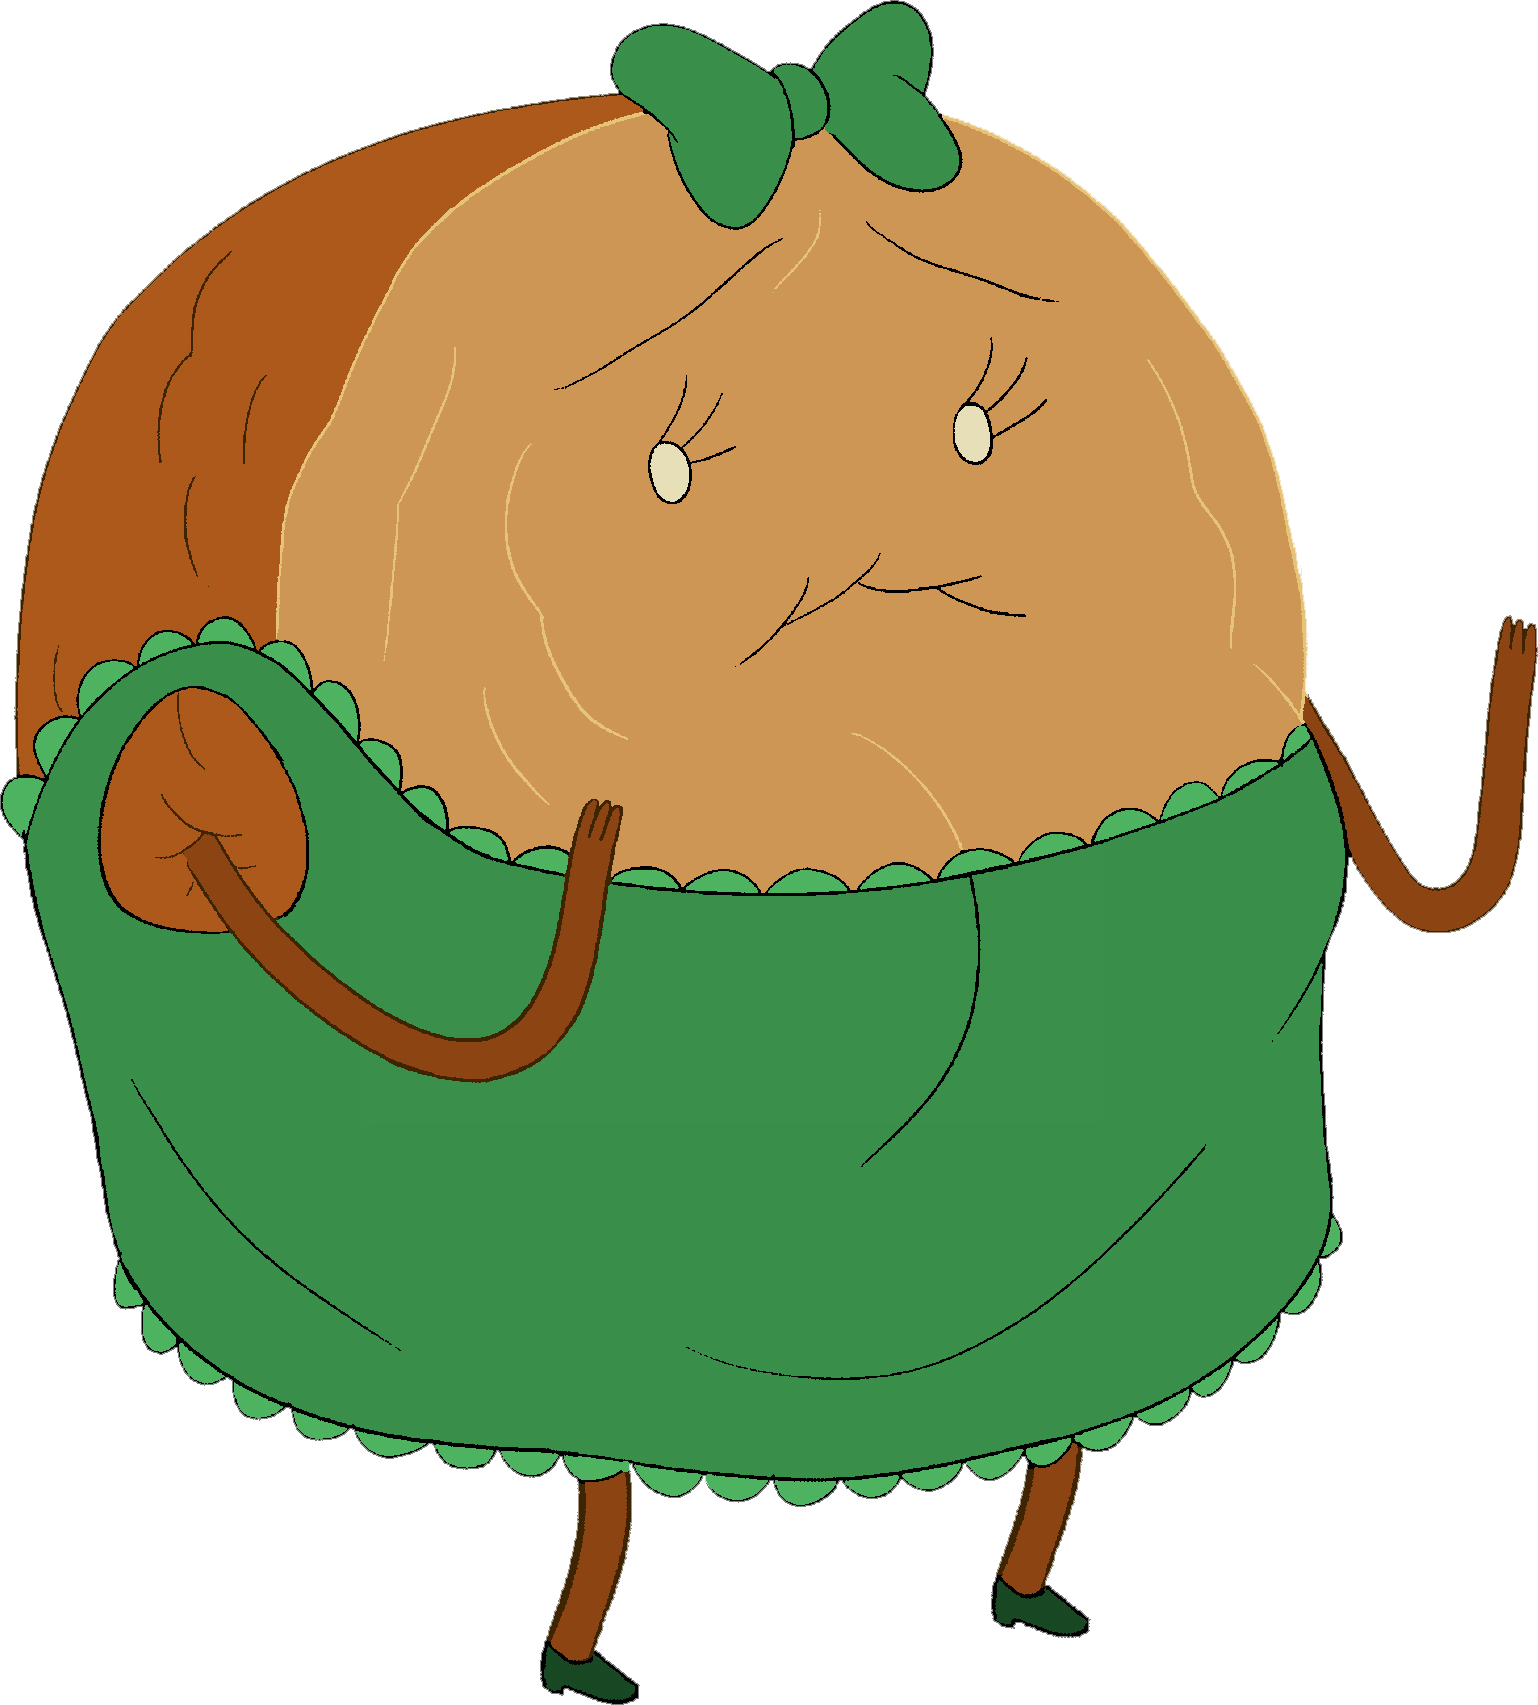 Cinnamon png image. Bun in dress adventure